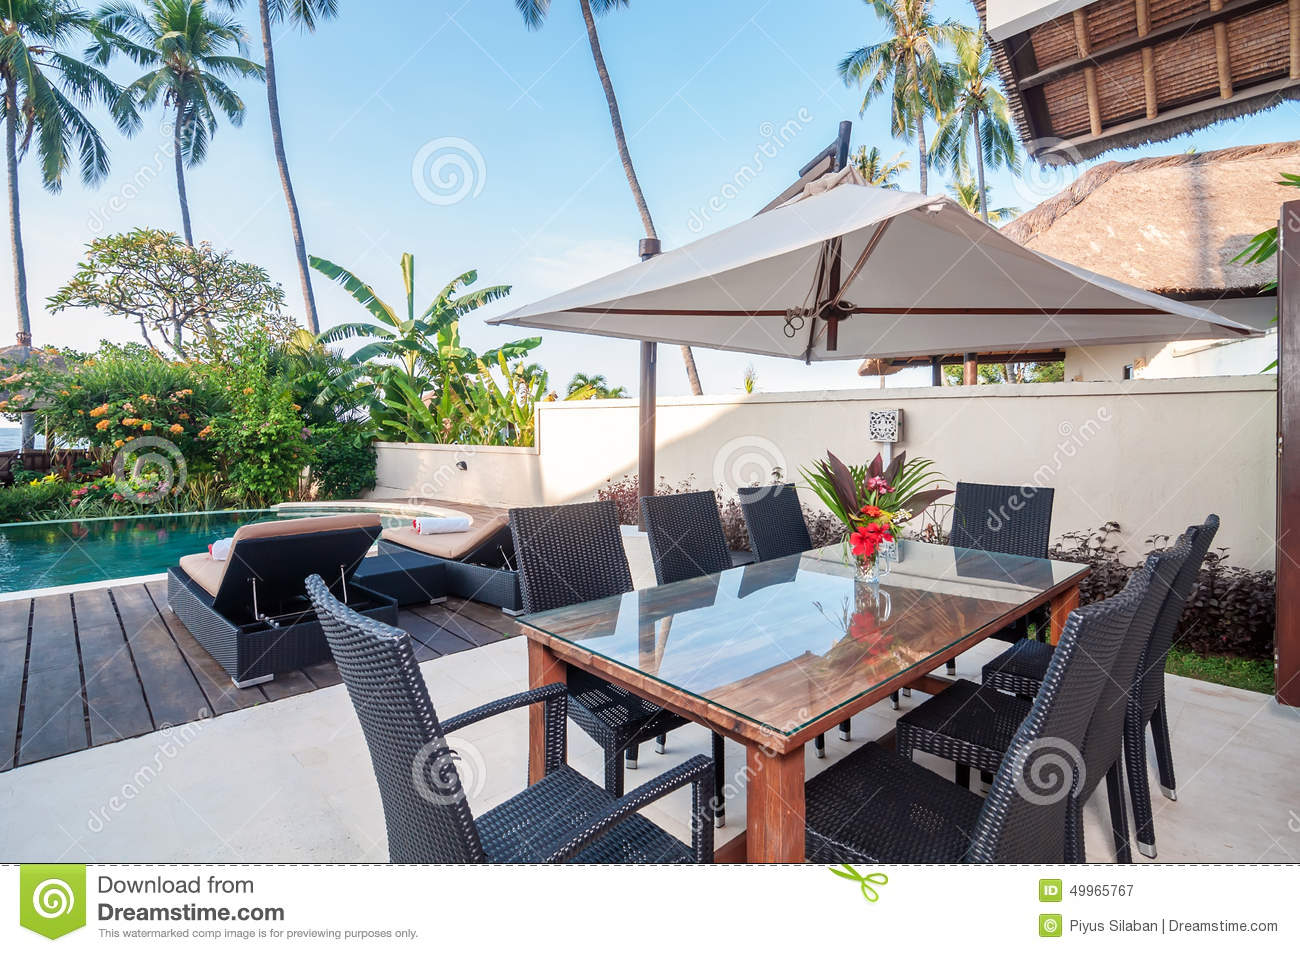 Five star villa bali stock photo image 49965767 for Green garden pool jakarta